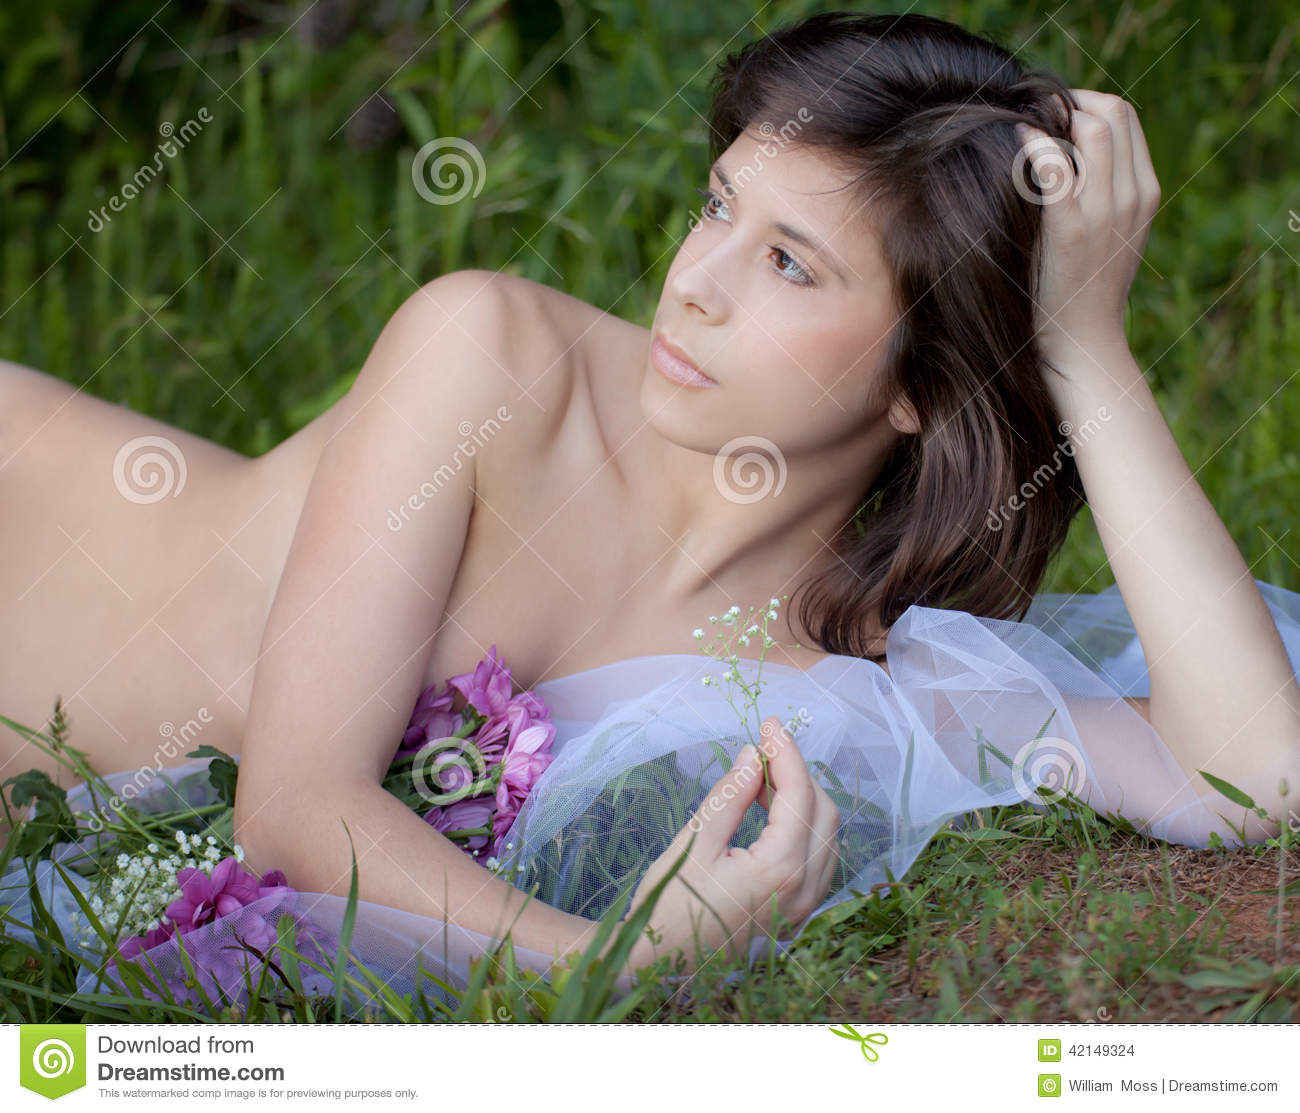 Exclusively Nude female flower spending